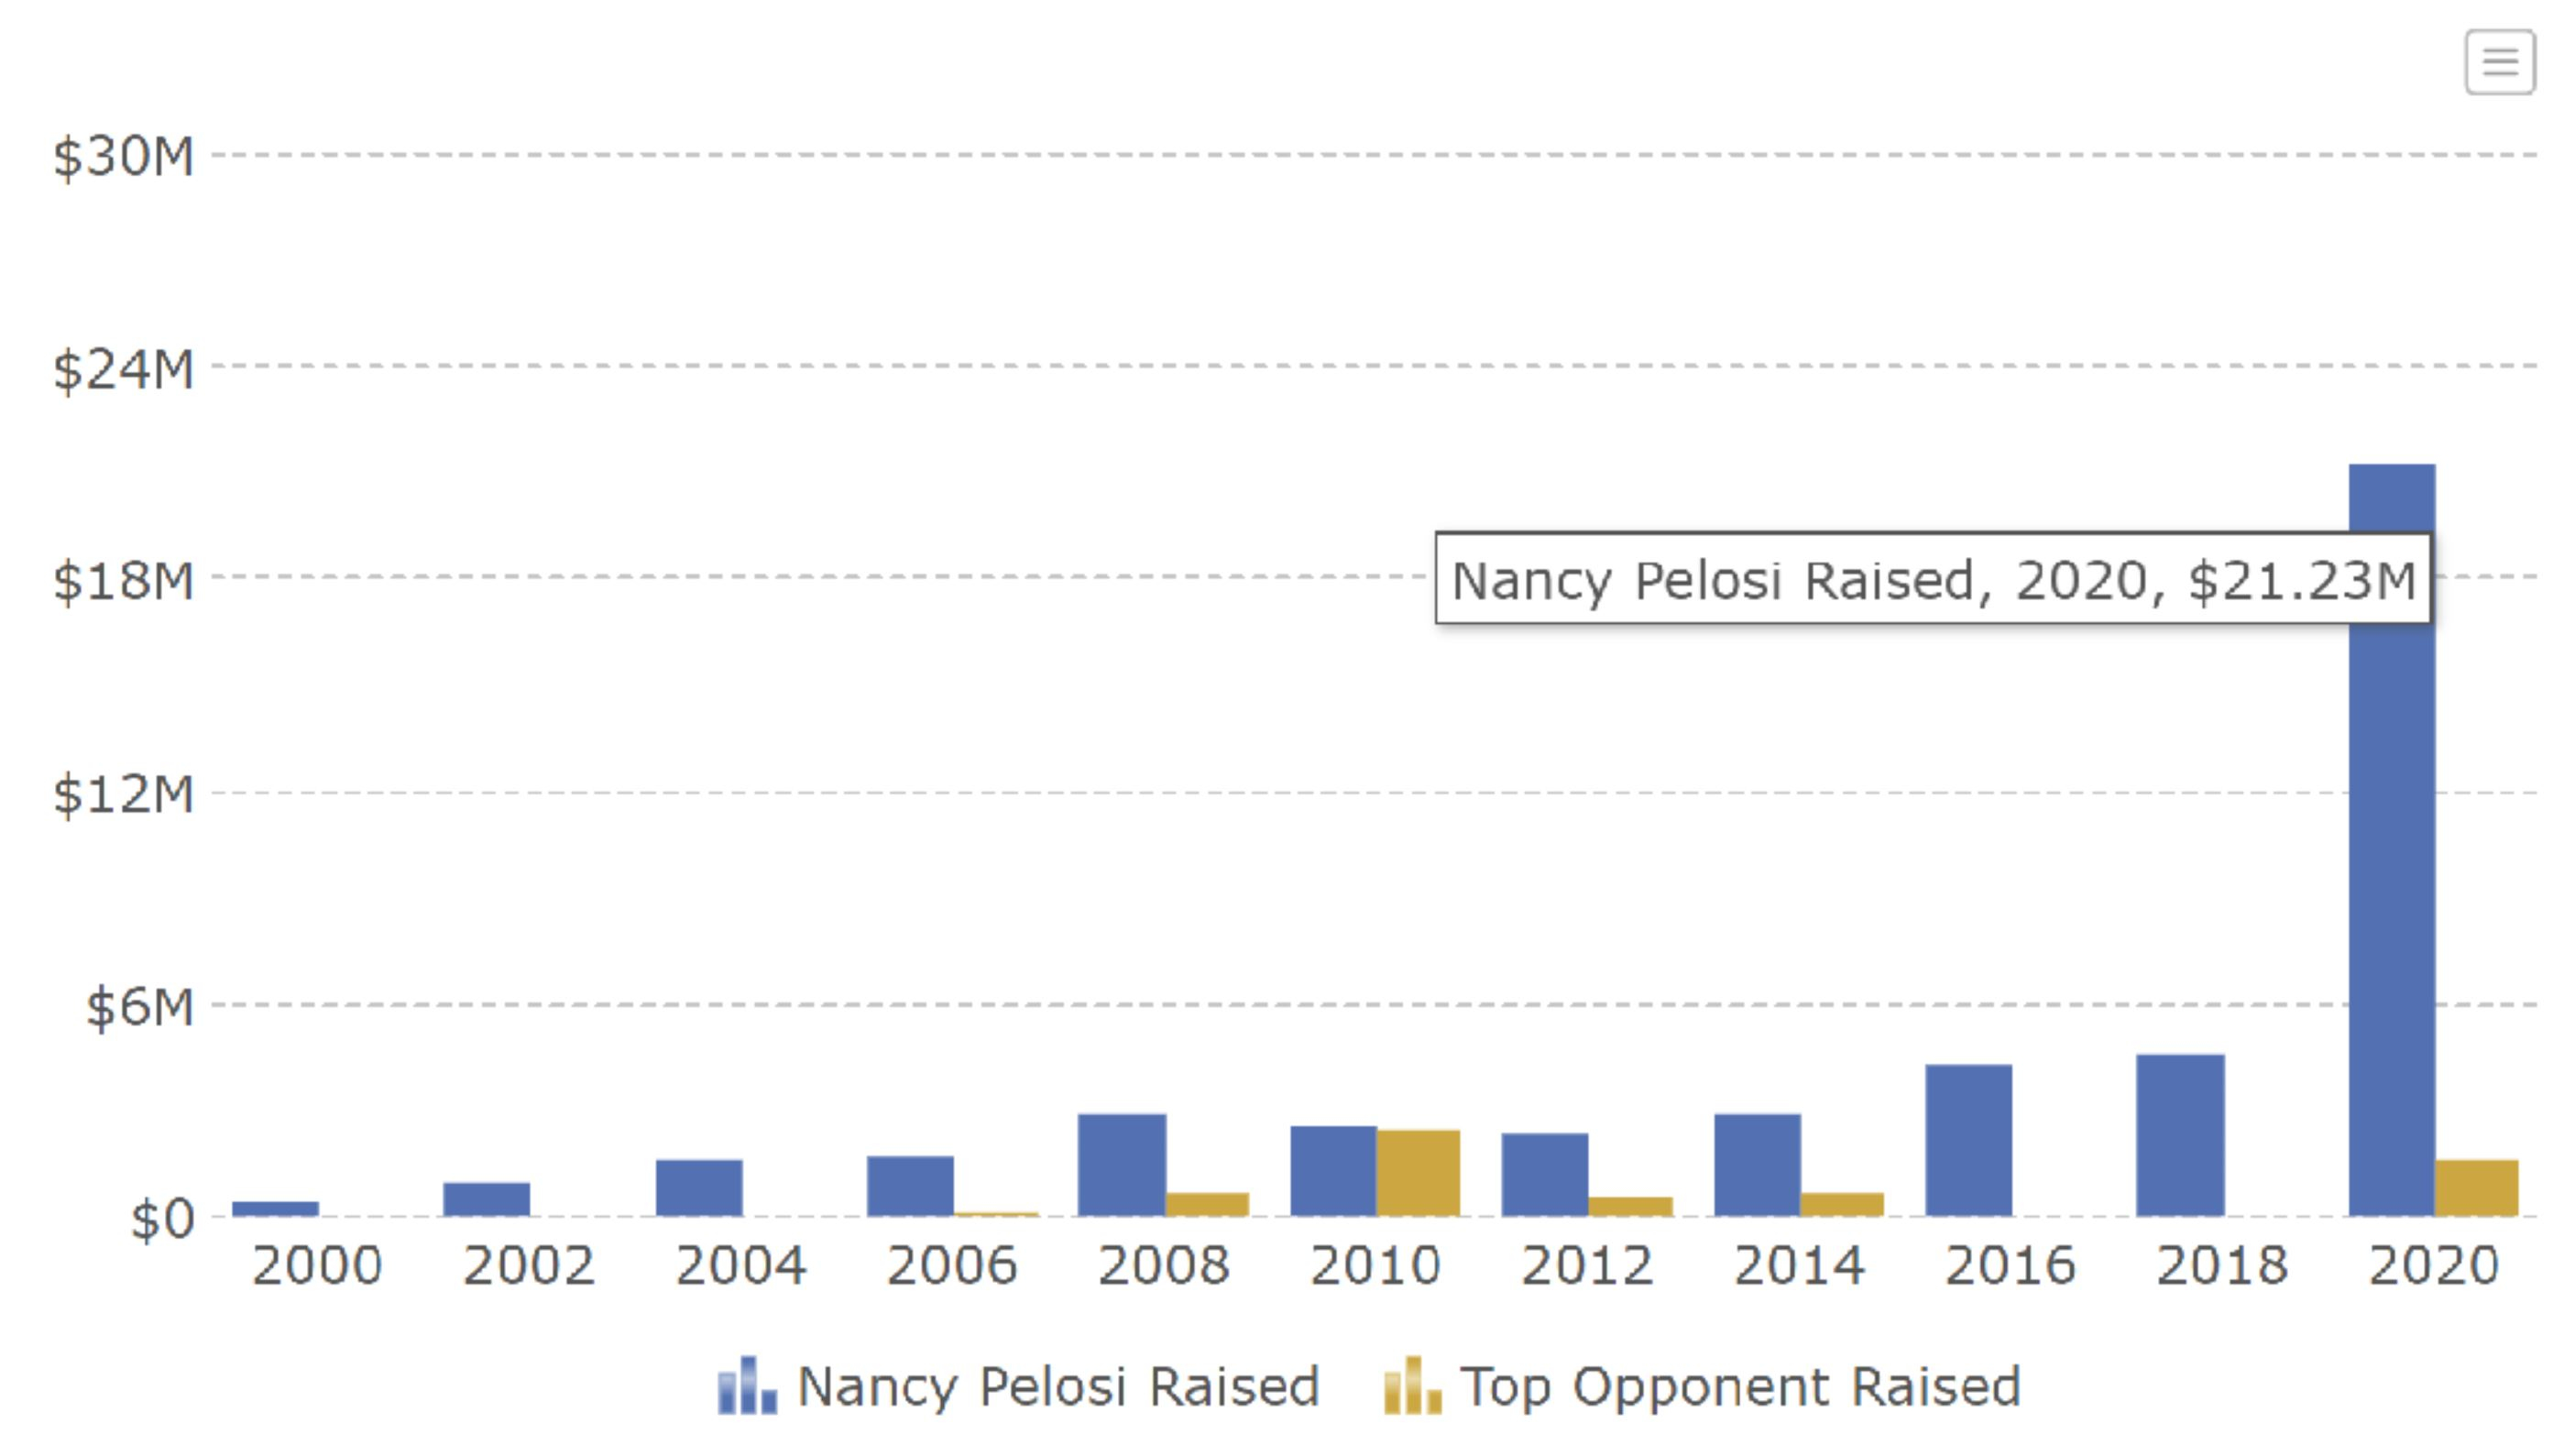 Nancy P. Pelosi (CA 12th) political donations for the 2020 election cycle. Open Secrets.org.